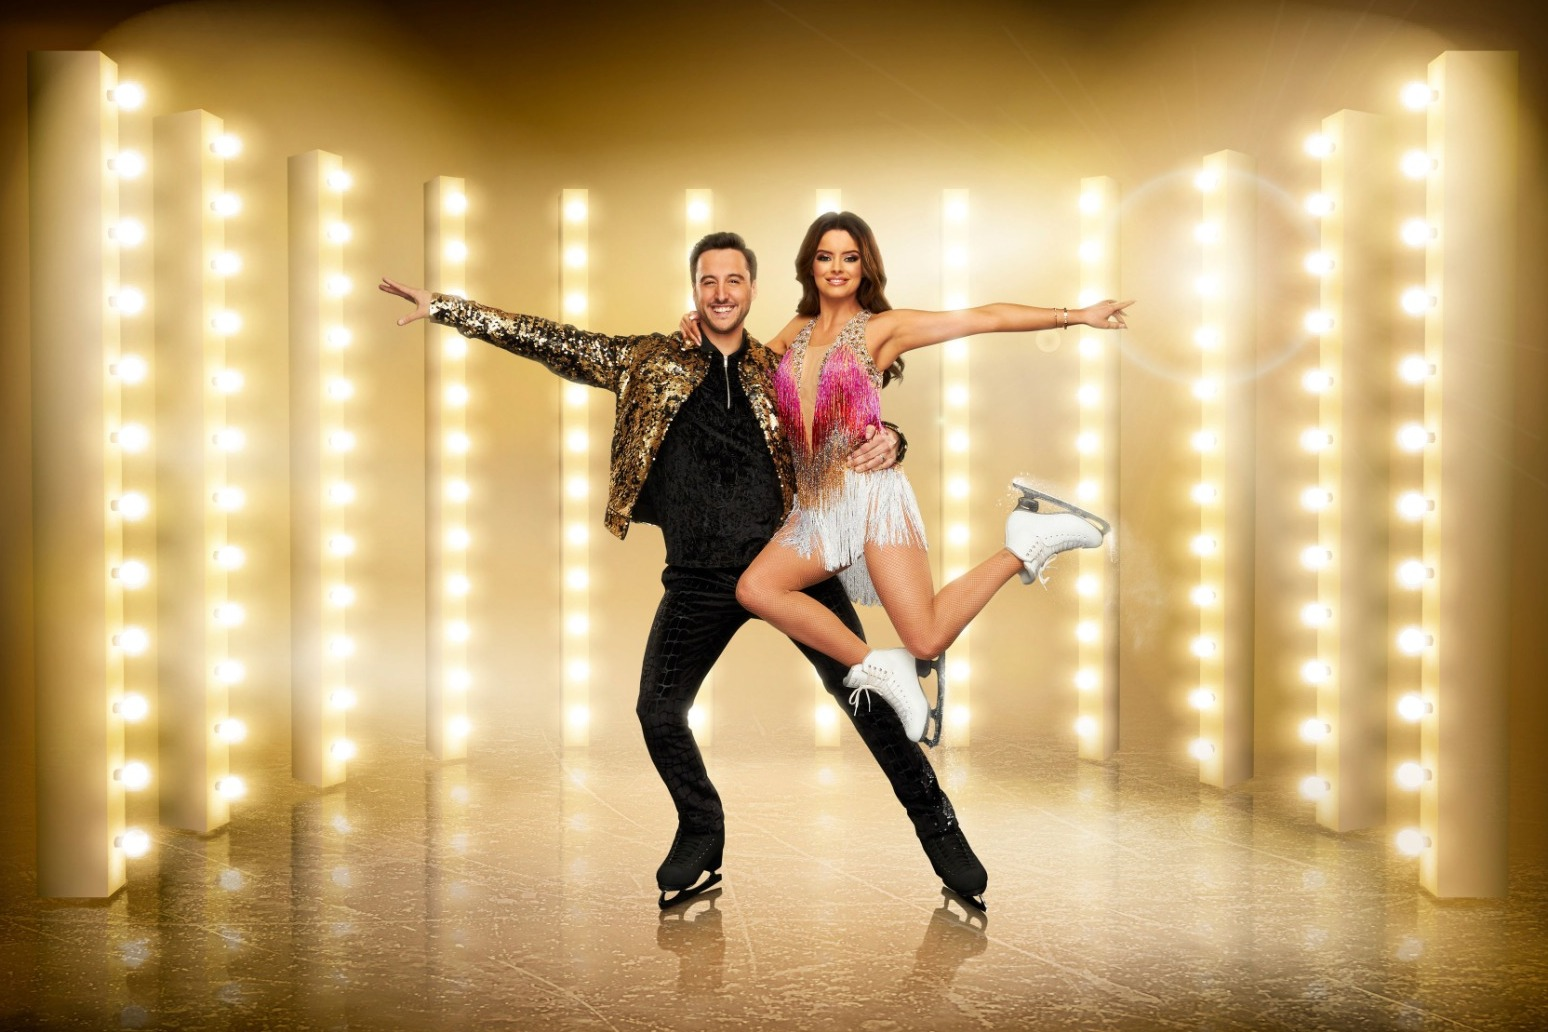 MAURA HIGGINS HOPES DANCING ON ICE TRAINING GIVES HER A \'SKATER\'S BUM\'